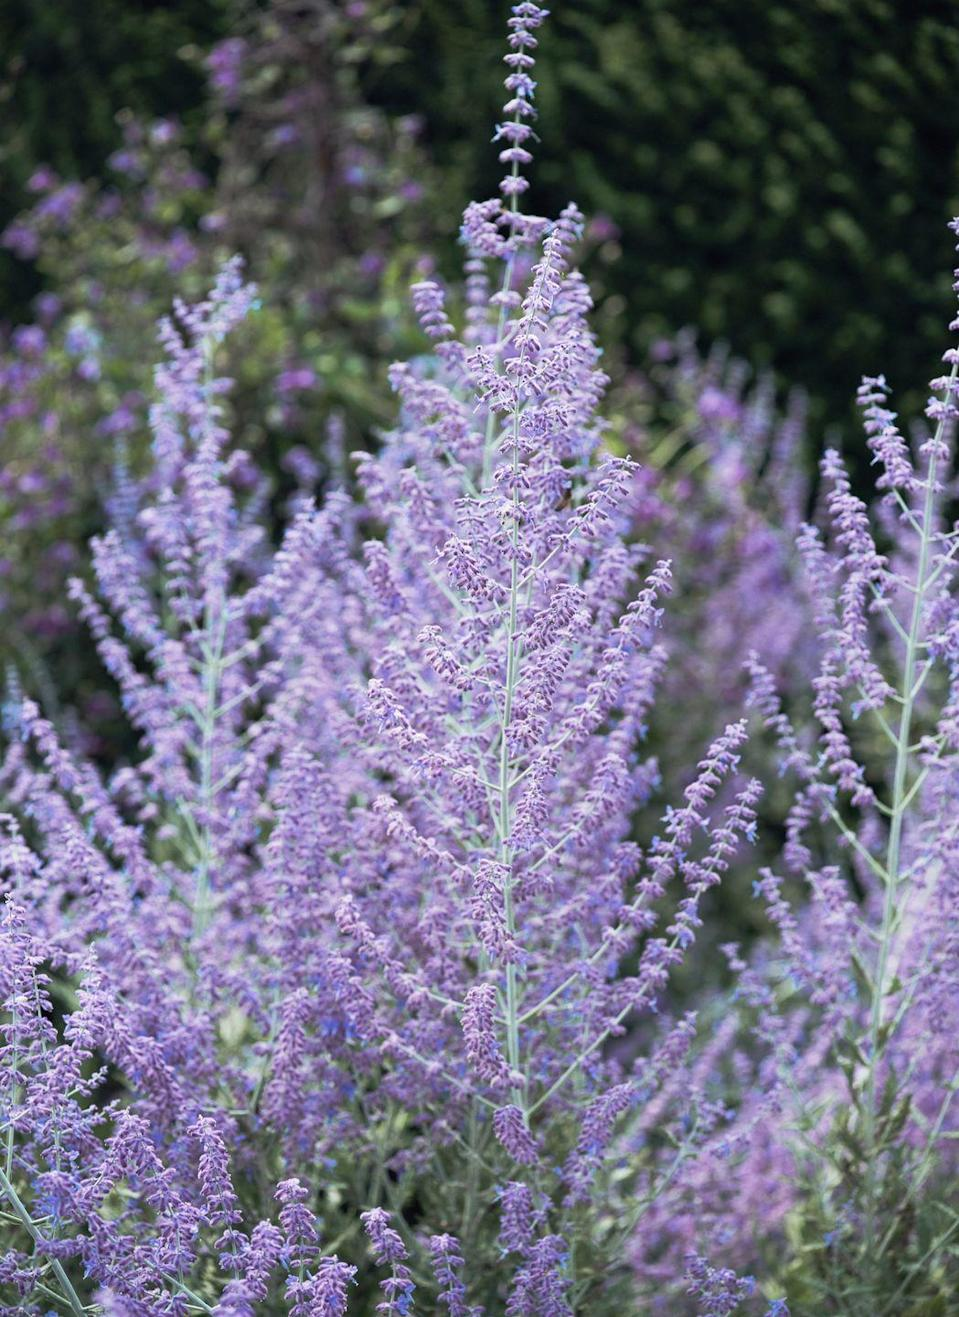 """<p>Include a minty addition to your outdoor space with these small spires of purple flowers. <a href=""""https://www.hgtv.com/outdoors/flowers-and-plants/planting-russian-sage"""" rel=""""nofollow noopener"""" target=""""_blank"""" data-ylk=""""slk:Russian sage"""" class=""""link rapid-noclick-resp"""">Russian sage</a> survives best in dry climates with plenty of intense sun light. </p><p><strong>When it blooms: </strong>Late spring through autumn</p><p><strong>Where to plant:</strong> Full sun</p><p><strong>When to plant: </strong>Late spring</p><p><strong>USDA Hardiness Zones:</strong> 5 to 9</p>"""